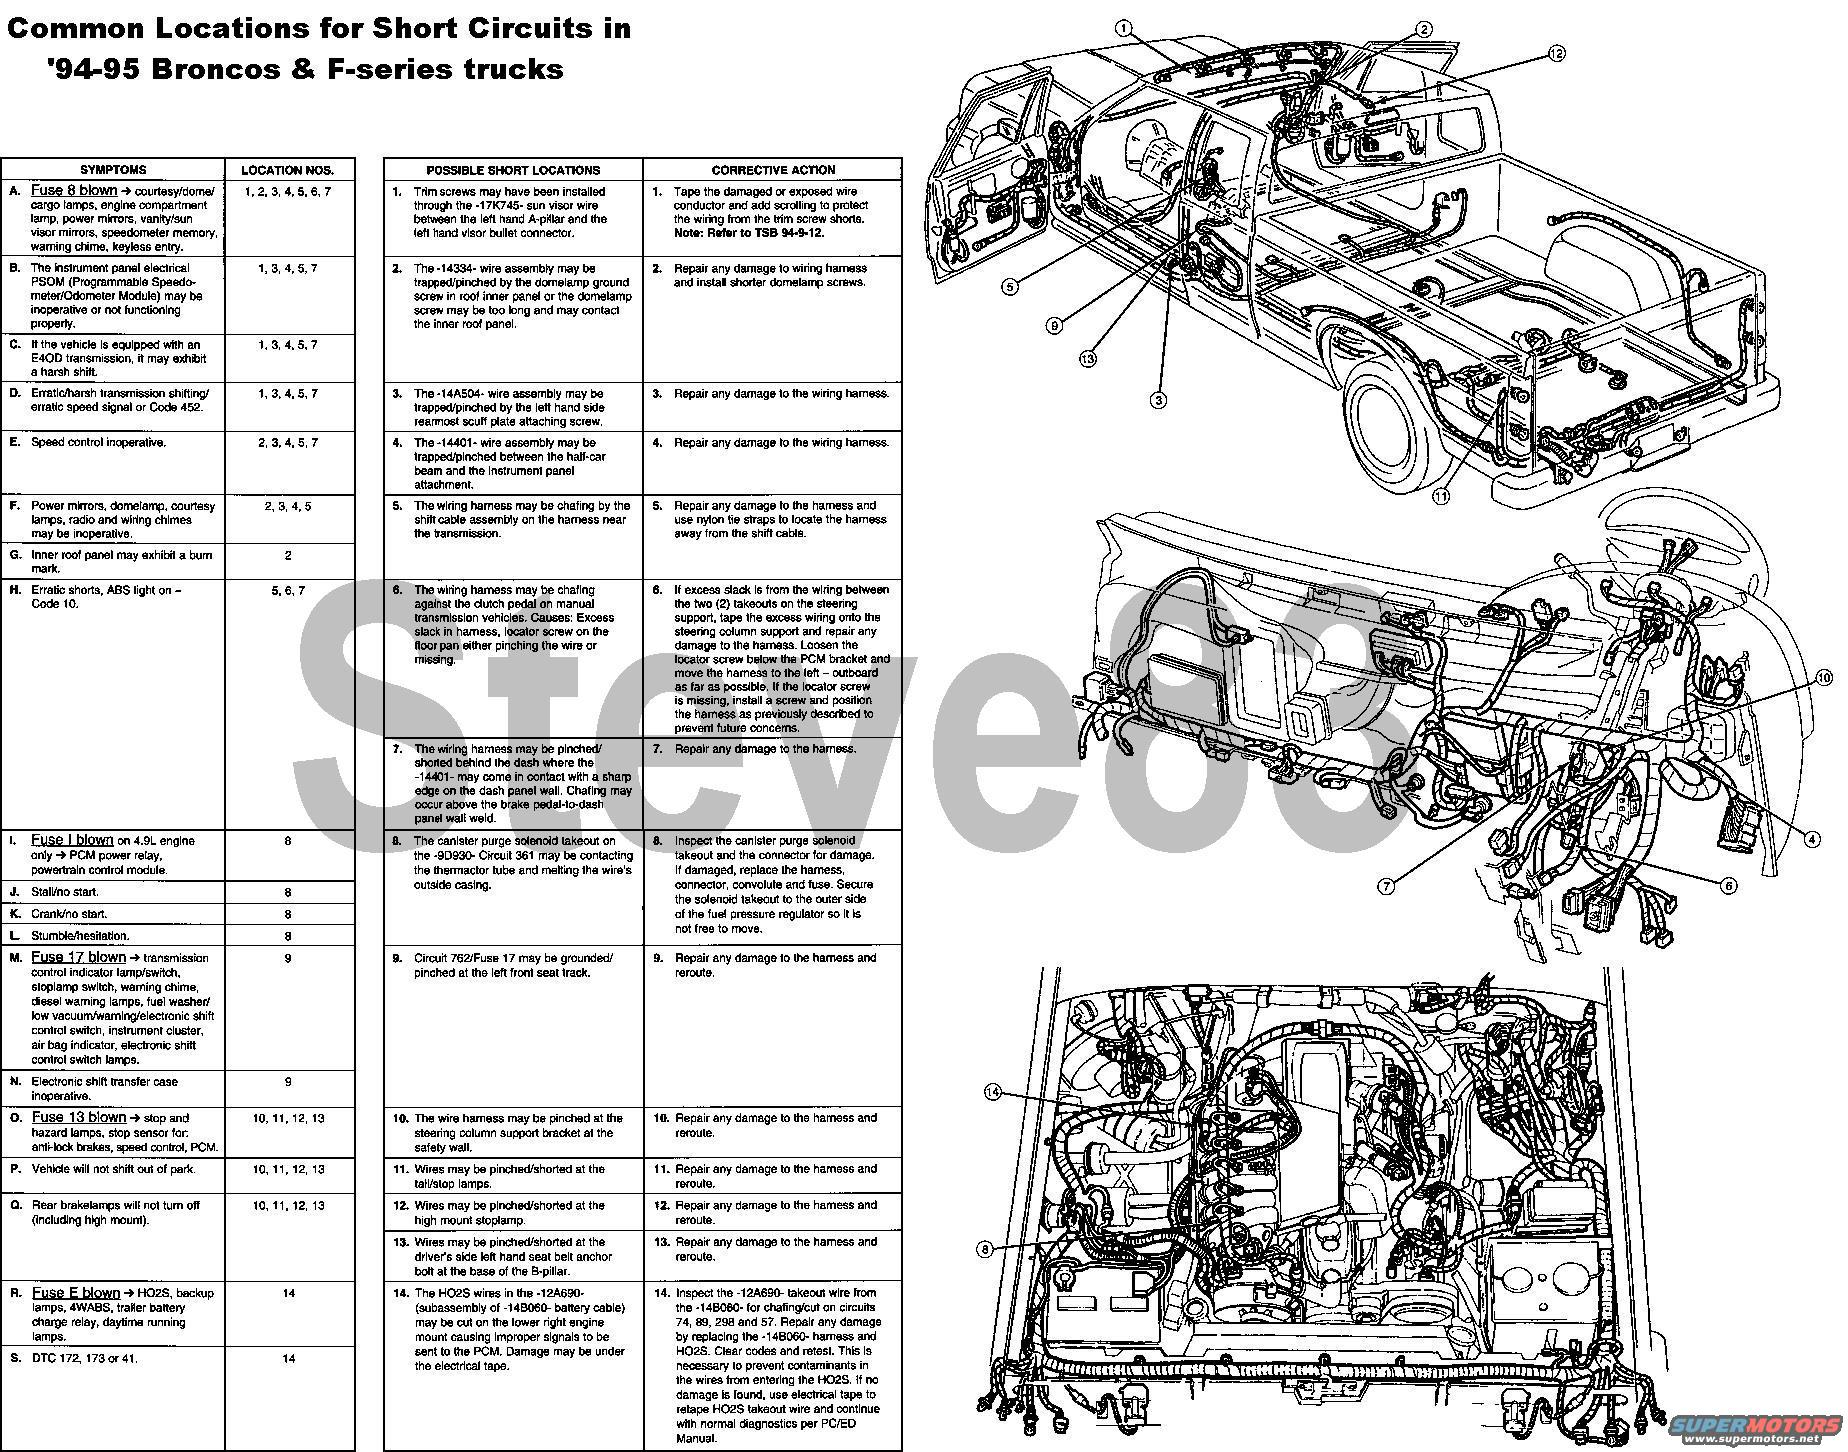 1983 Ford Bronco TSBs & FSAs (Recalls) for \'83-96 Broncos & F150s ...